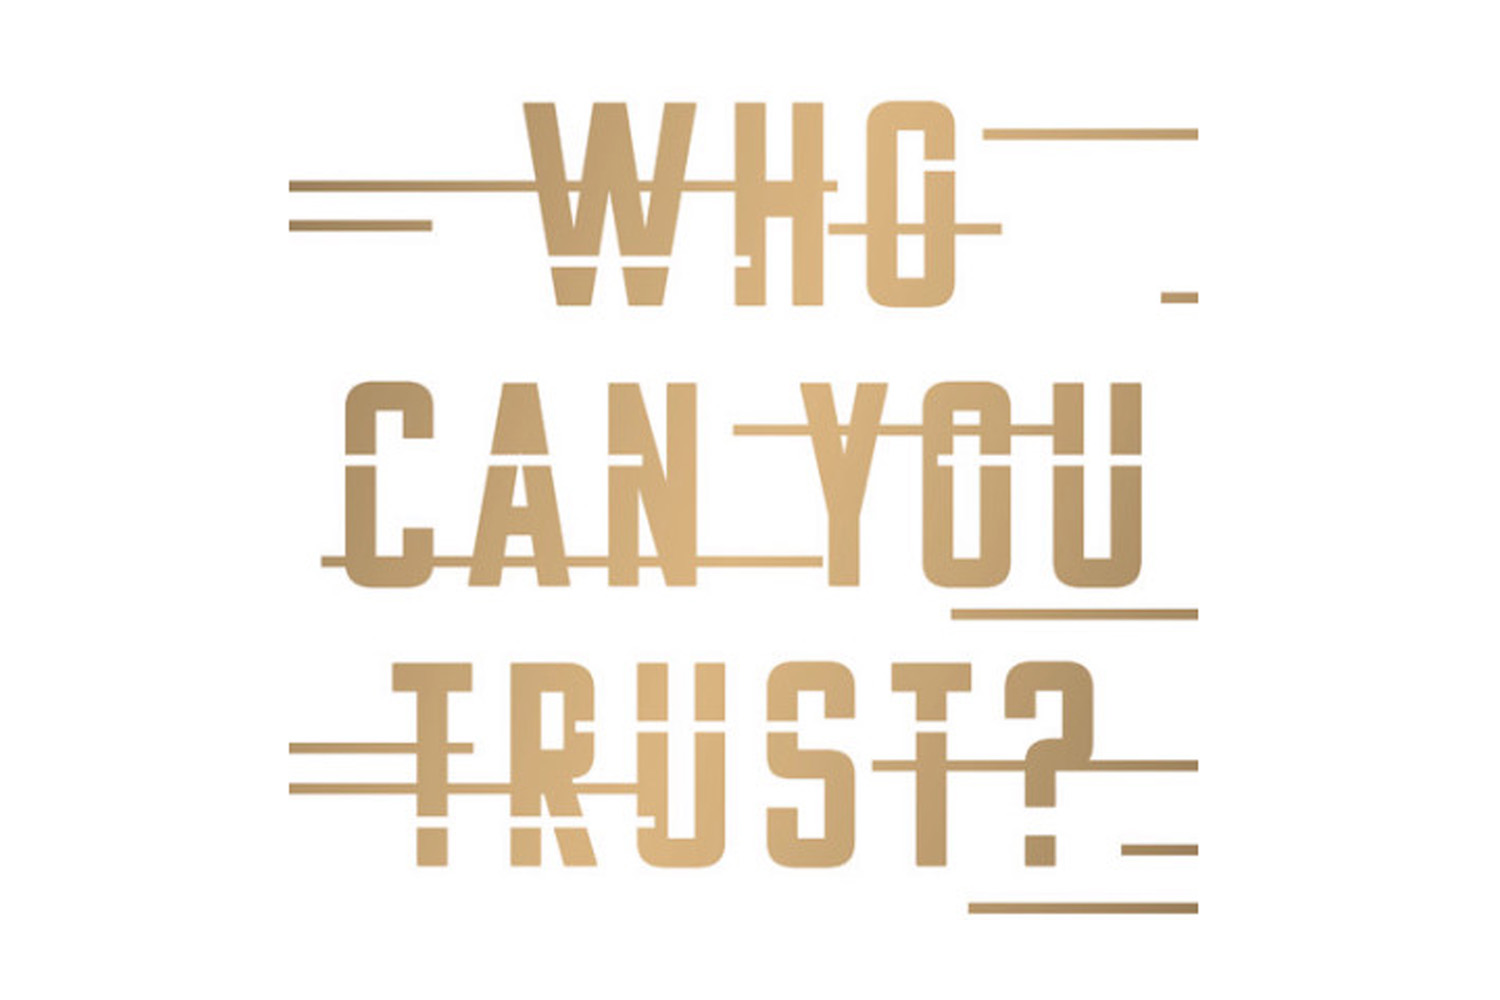 On the subject of trust